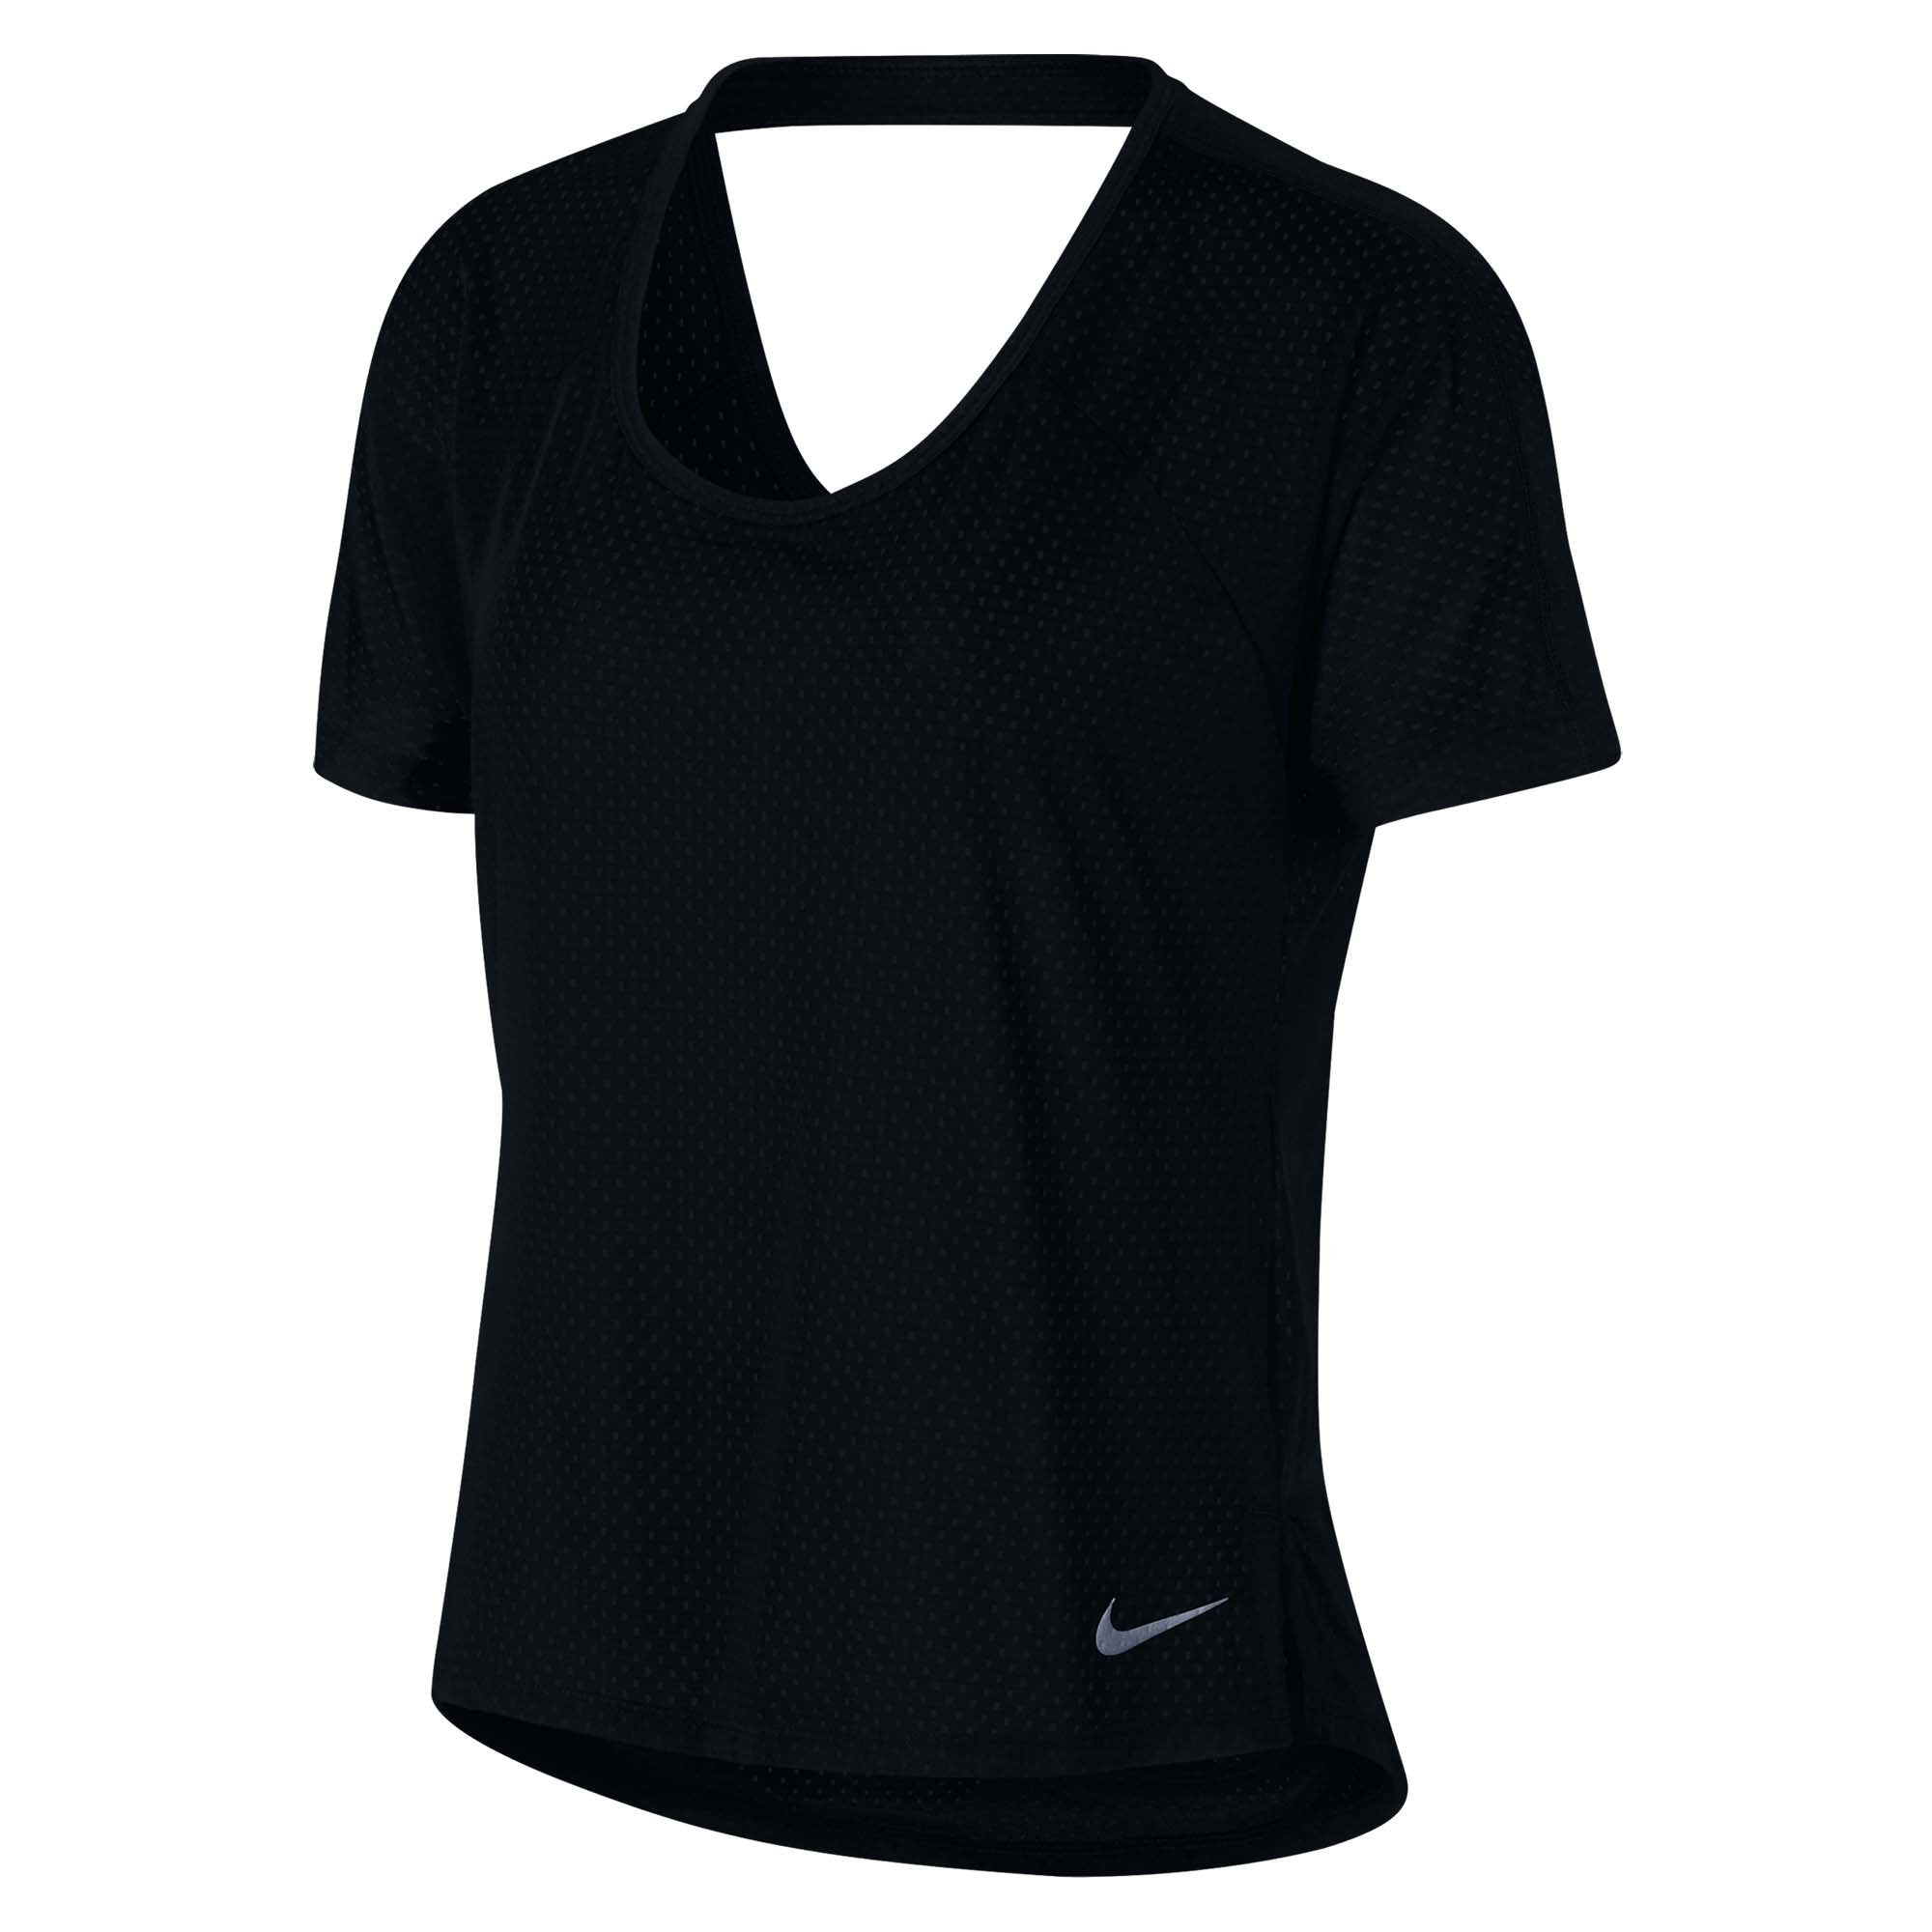 c3684e0d32d78 Buy Nike Women Miler Breathe Shortsleeve Tank Top Online in Singapore |  Royal Sporting House